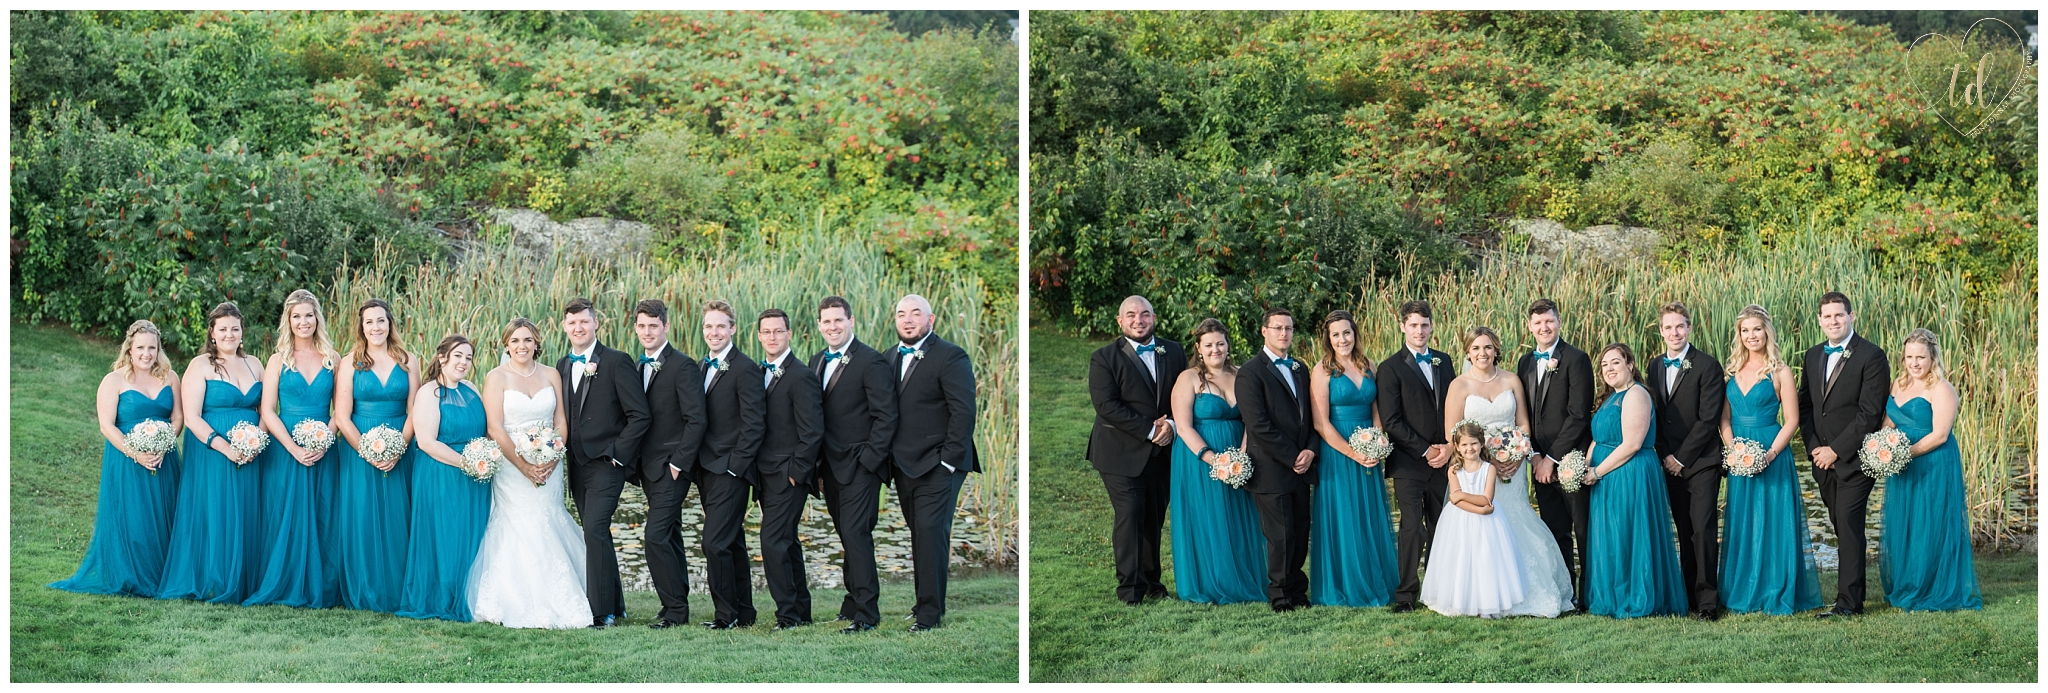 Wedding photography at Stage Neck Inn in York Maine